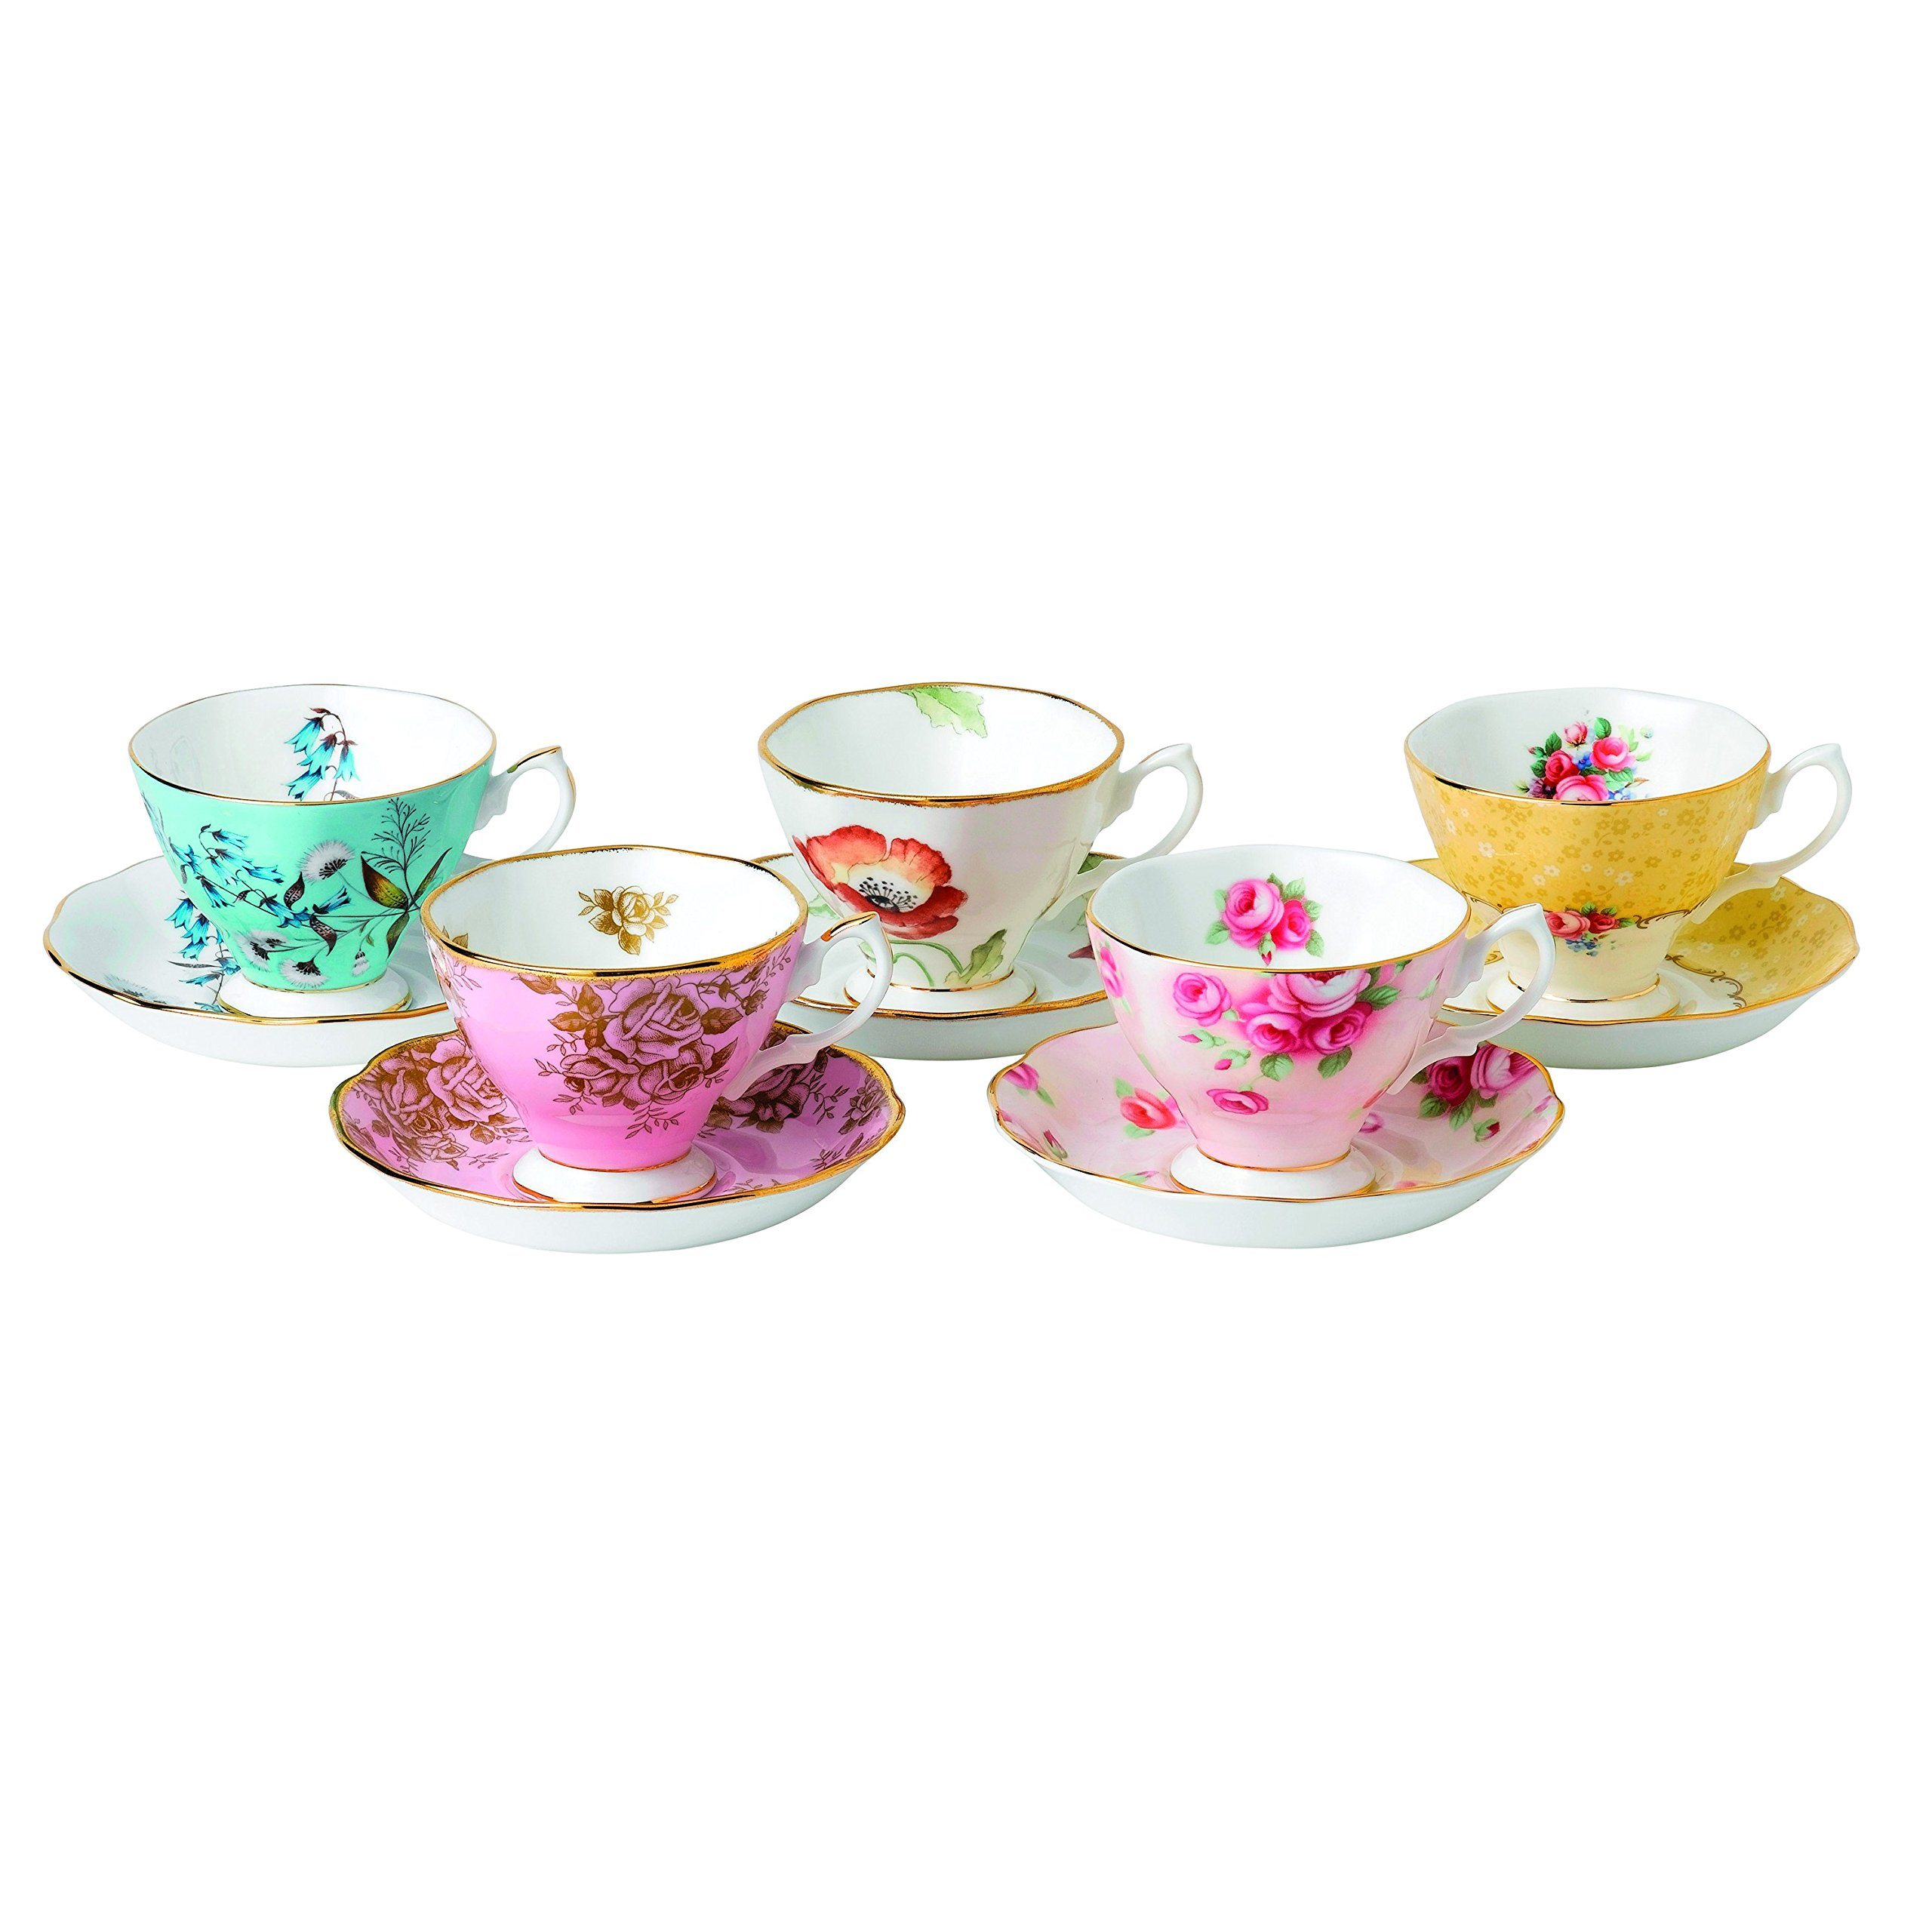 Royal Albert 5 Piece 100 Years 1950-1990 Teacup & Saucer Set, Multicolor by Royal Albert (Image #1)